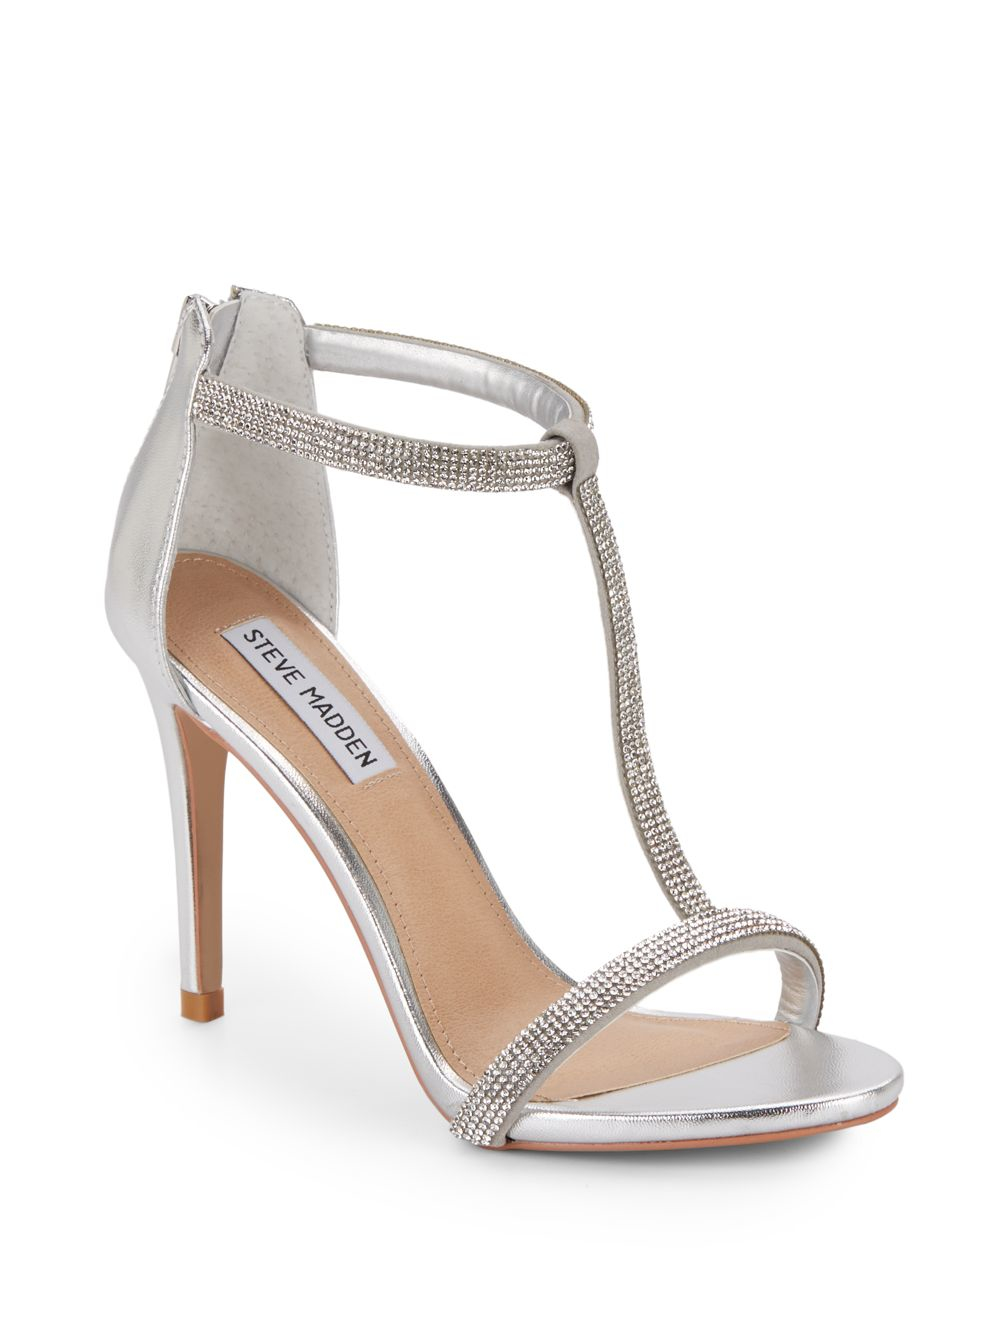 Steve Madden Francia Rhinestone Trimmed Sandals In